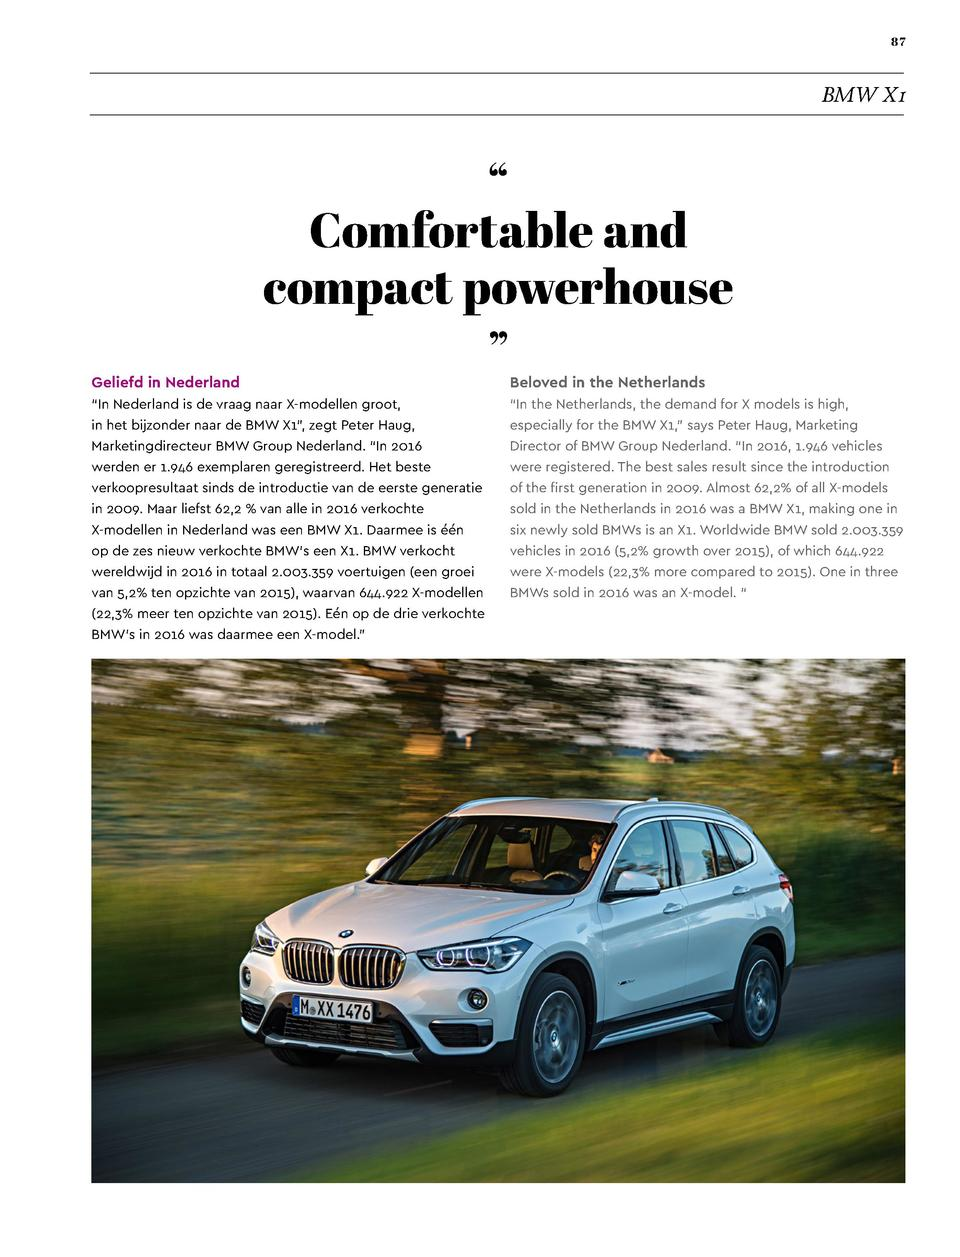 87  BMW X1  Geliefd in Nederland      Comfortable and compact powerhouse     Beloved in the Netherlands     In Nederland i...